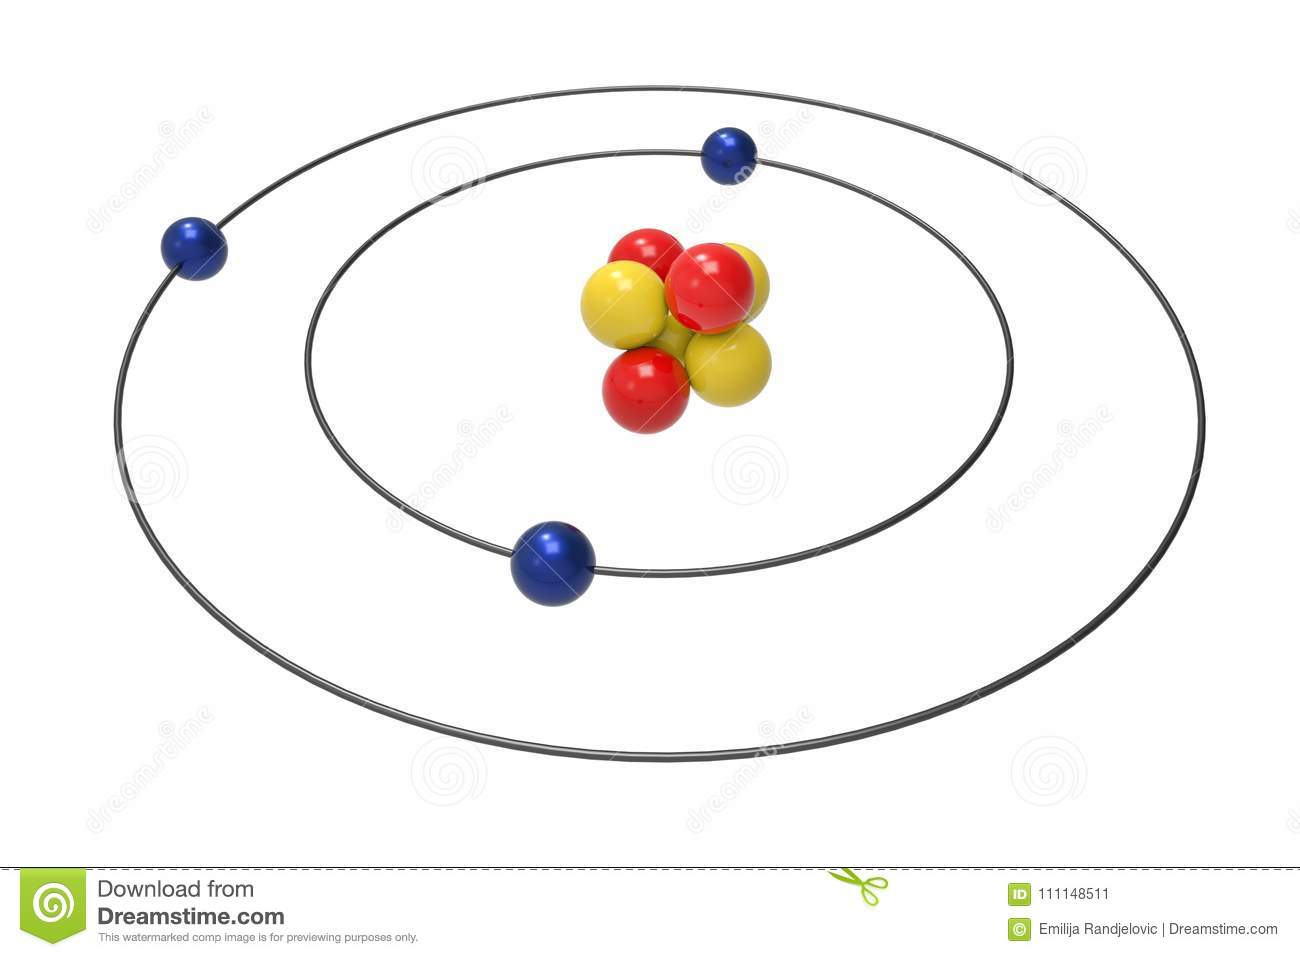 hight resolution of bohr model of lithium atom with proton neutron and electron